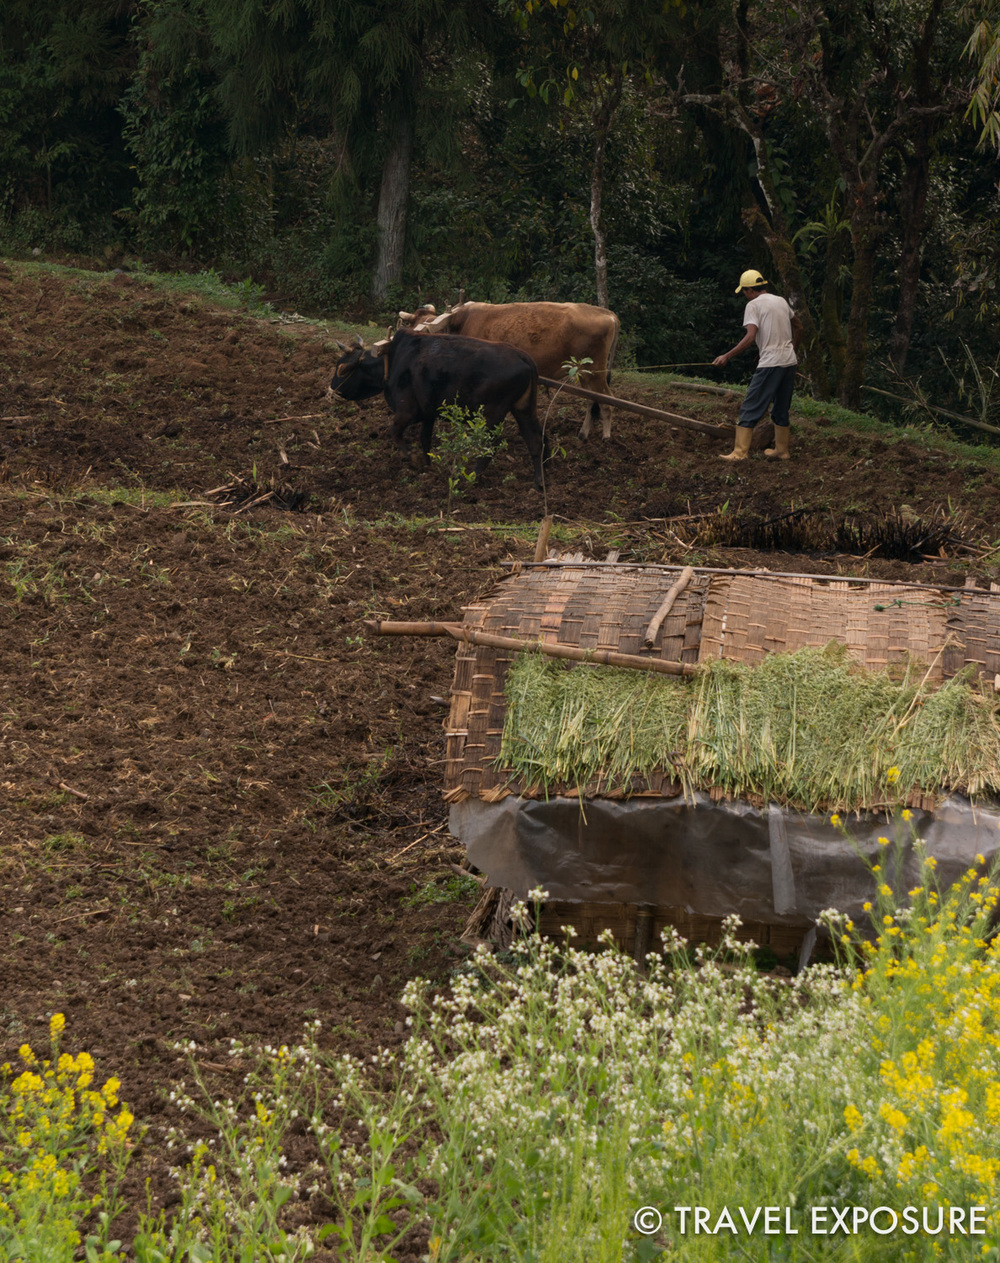 At our homestay in Kewzing - farming the old-fashioned way